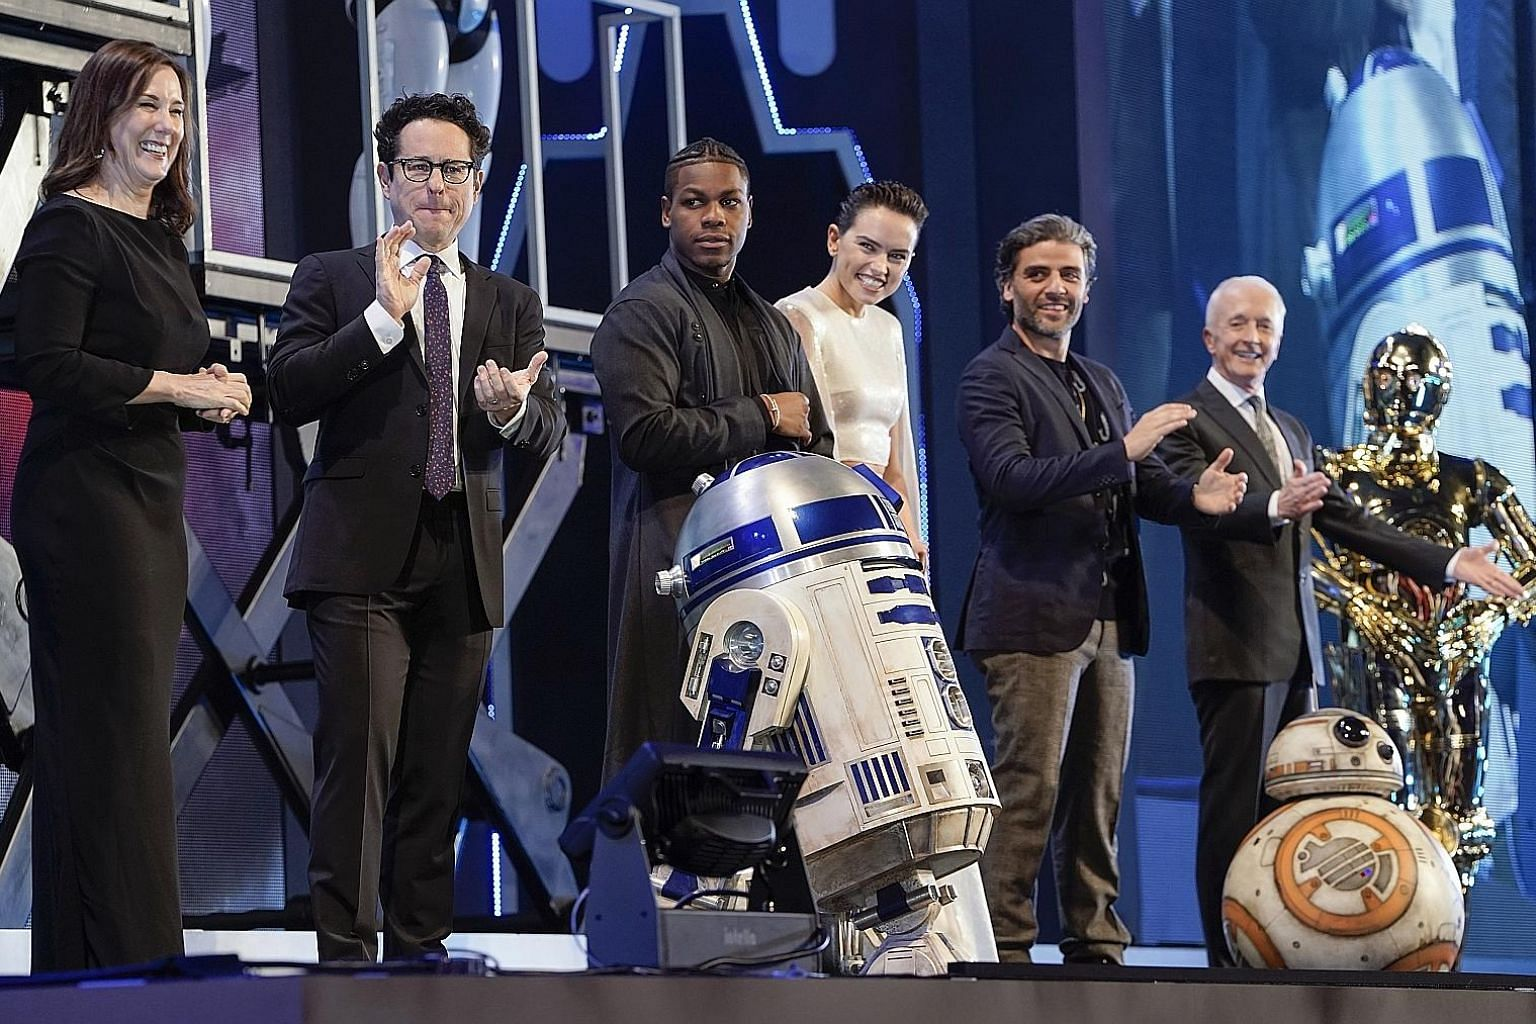 The Star Wars: The Rise Of Skywalker's cast and crew, including (above, from left) film producer Kathleen Kennedy, director J.J. Abrams and actors John Boyega, Daisy Ridley, Oscar Isaac and Anthony Daniels, in Tokyo earlier this month.